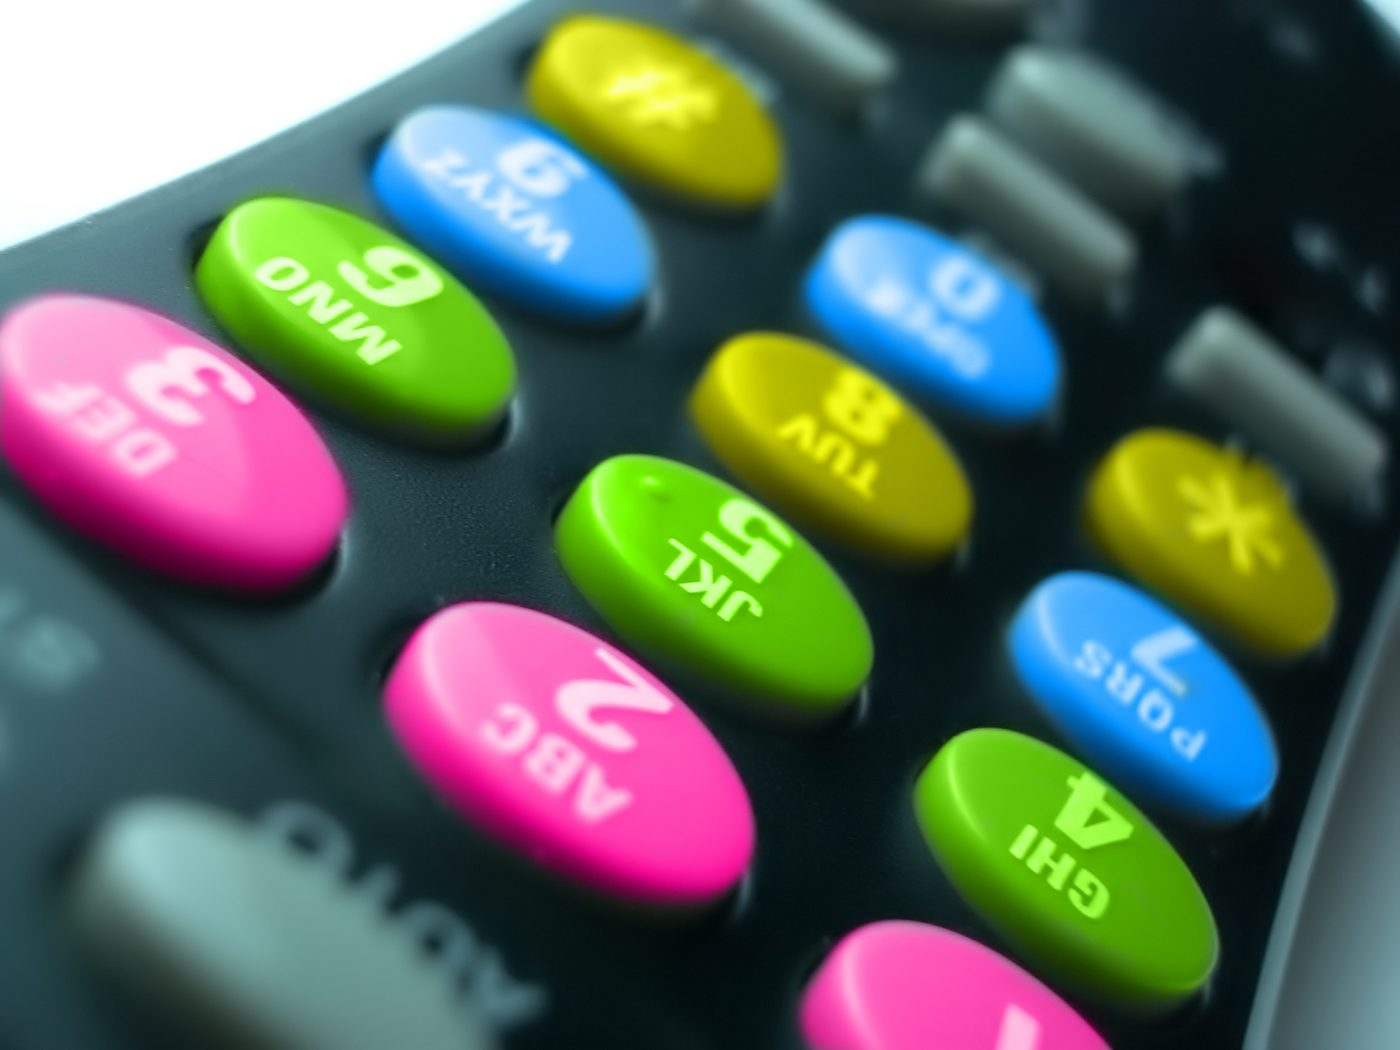 colorful-phone-1538113-freeimages-by-kerem-yucel